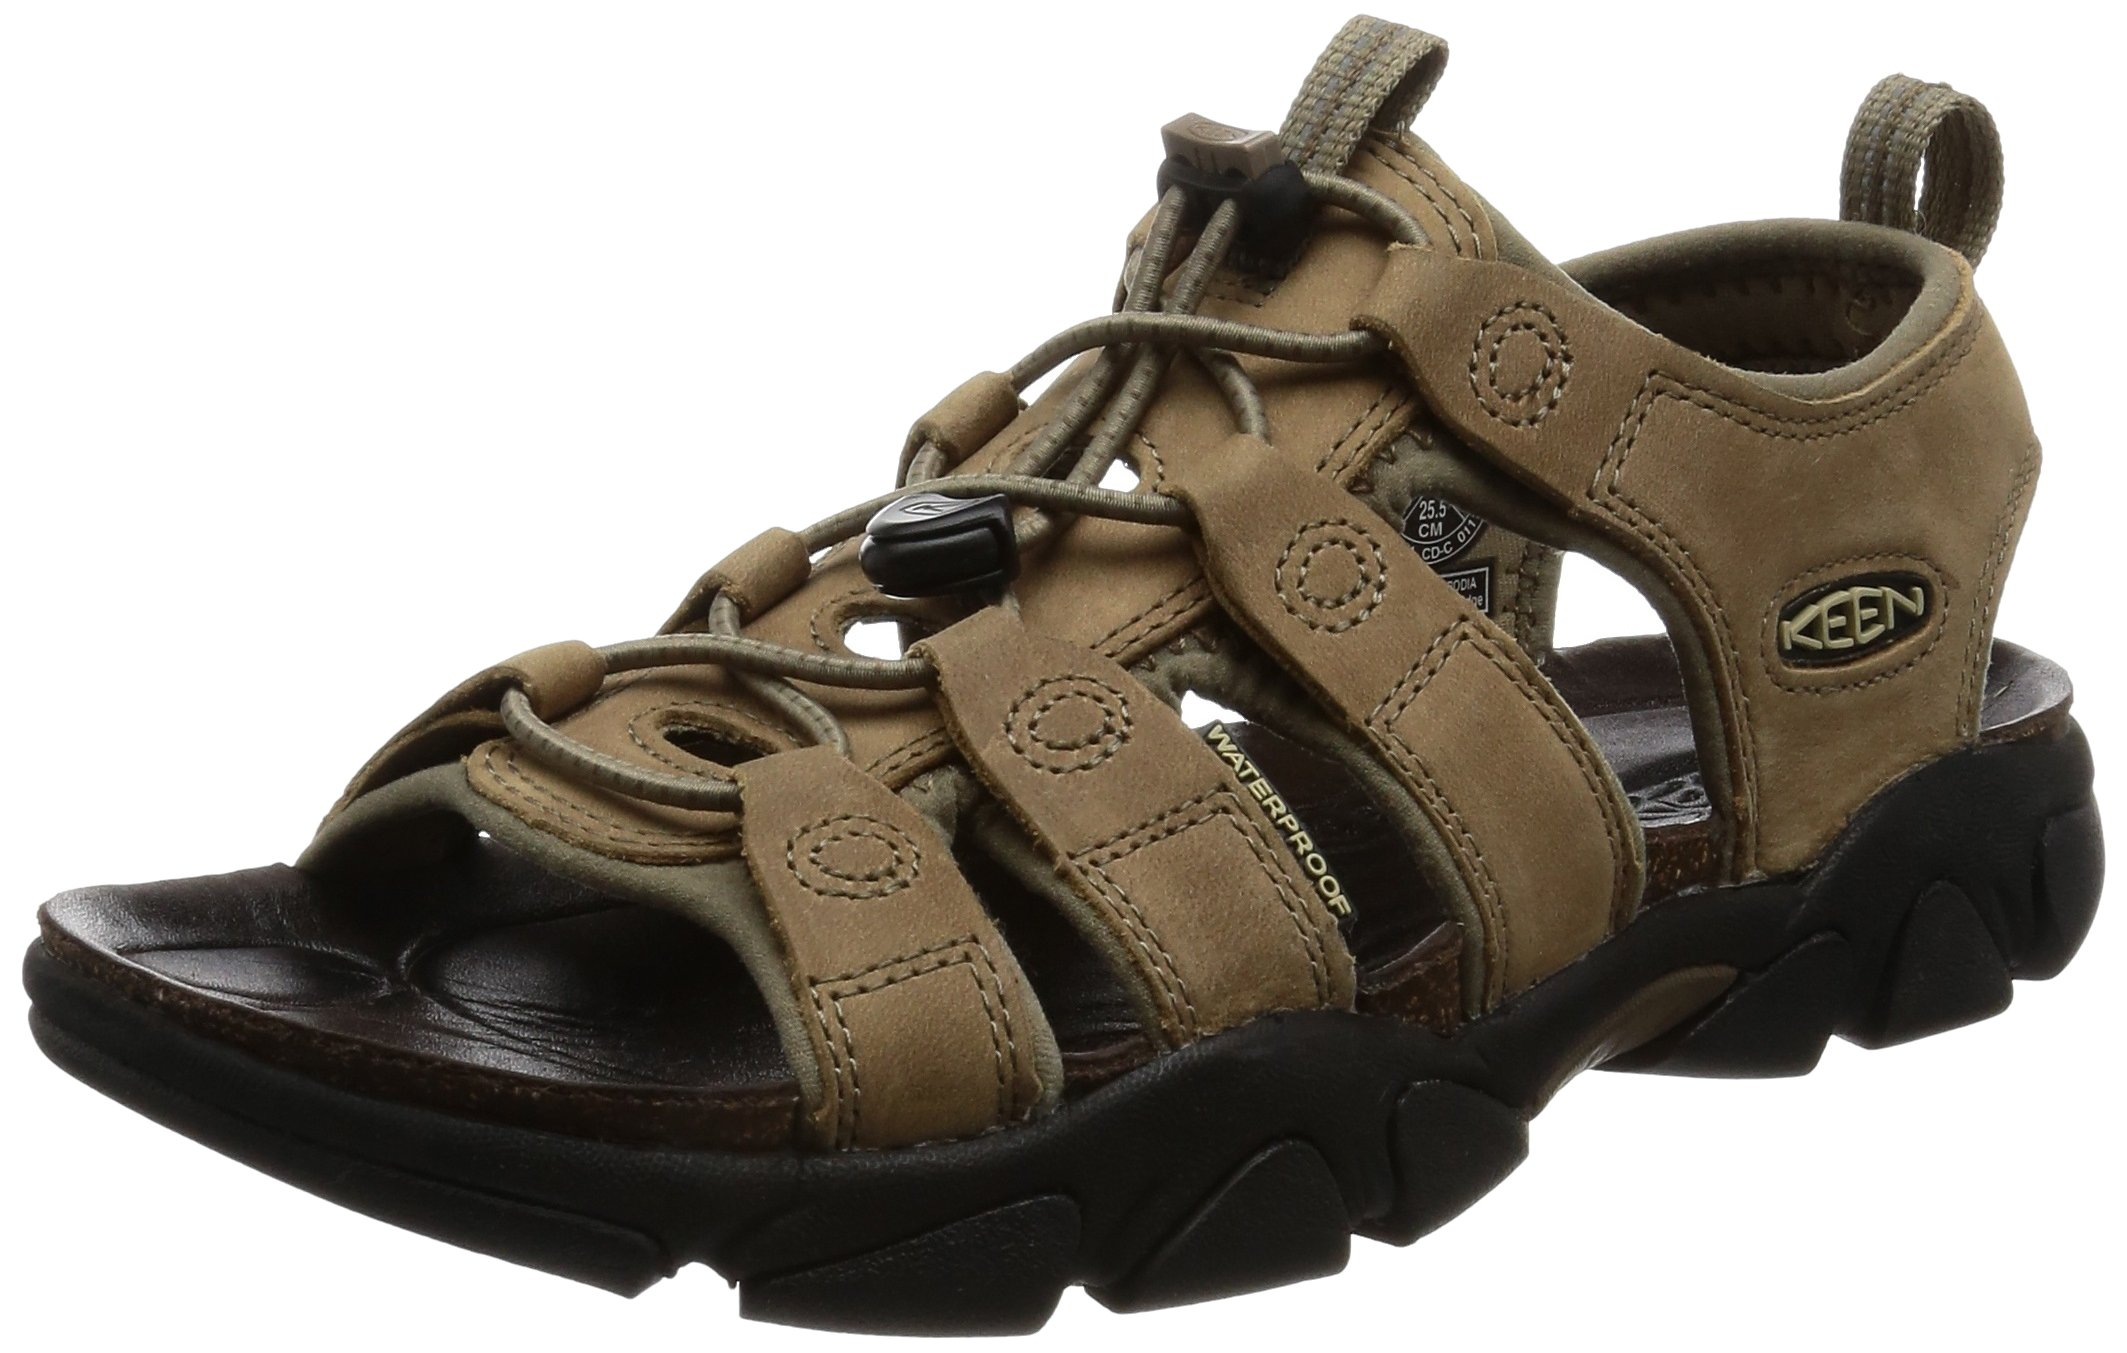 KEEN Men's Daytona Sandal,Timberwolf,11 M US